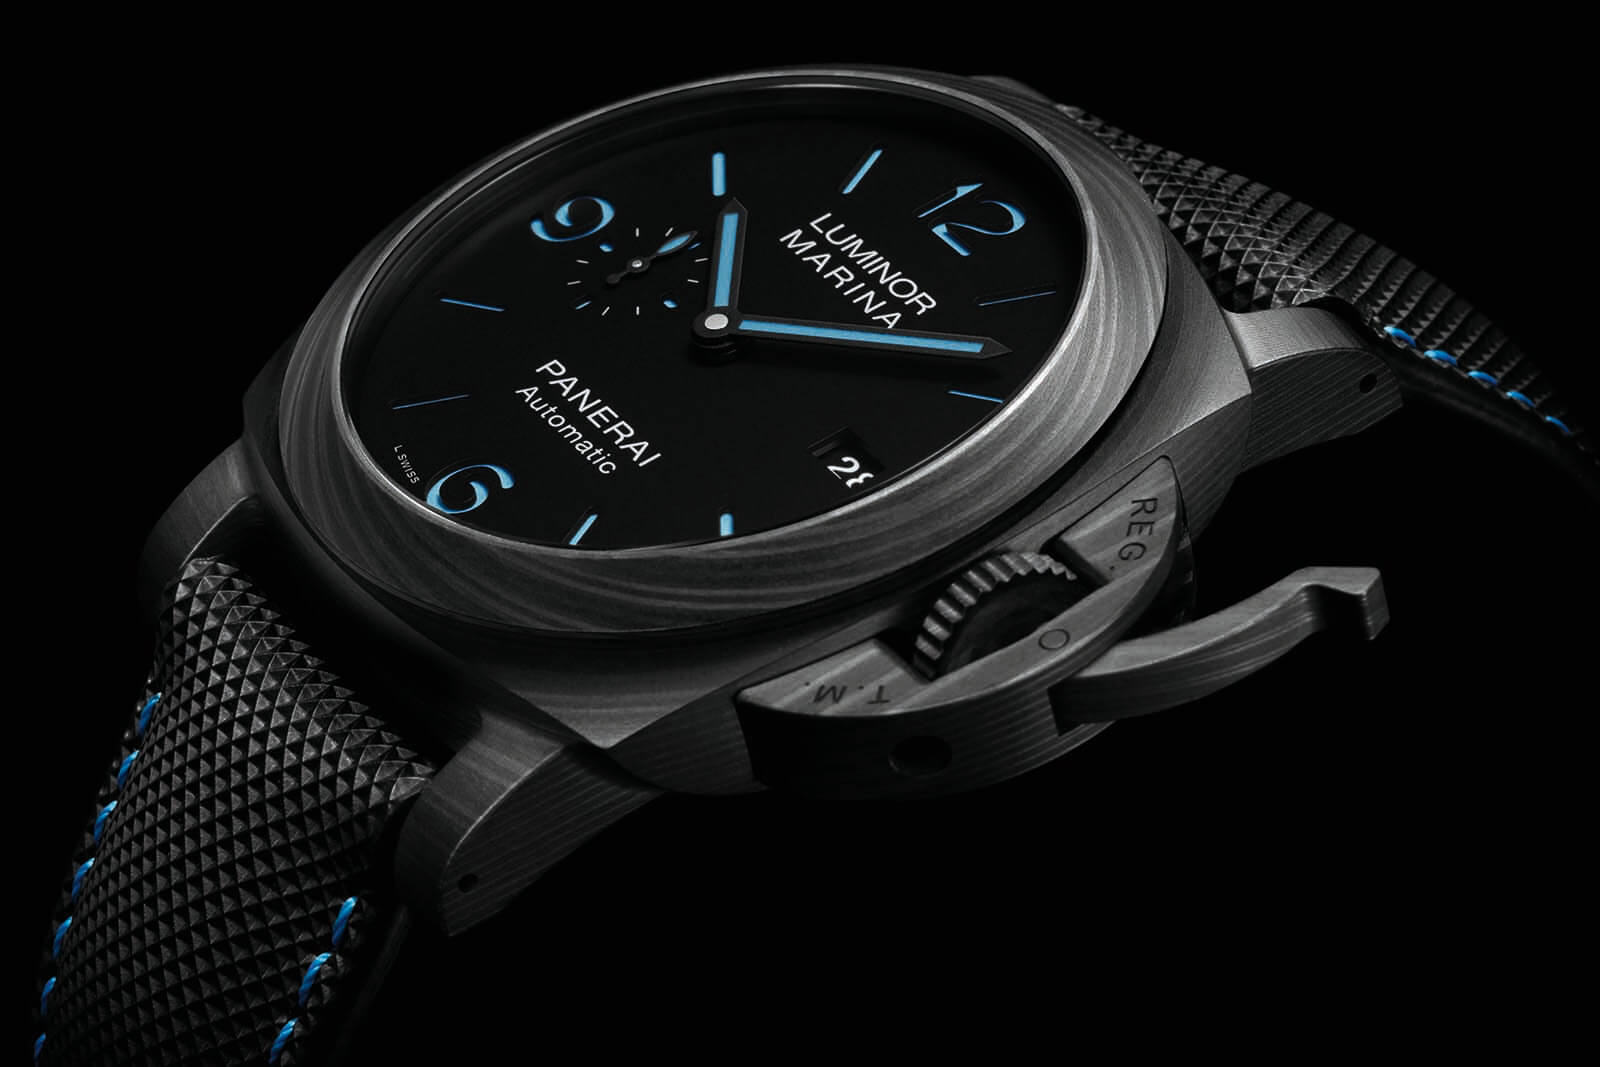 Panerai Luminor Marina Carbotech portada